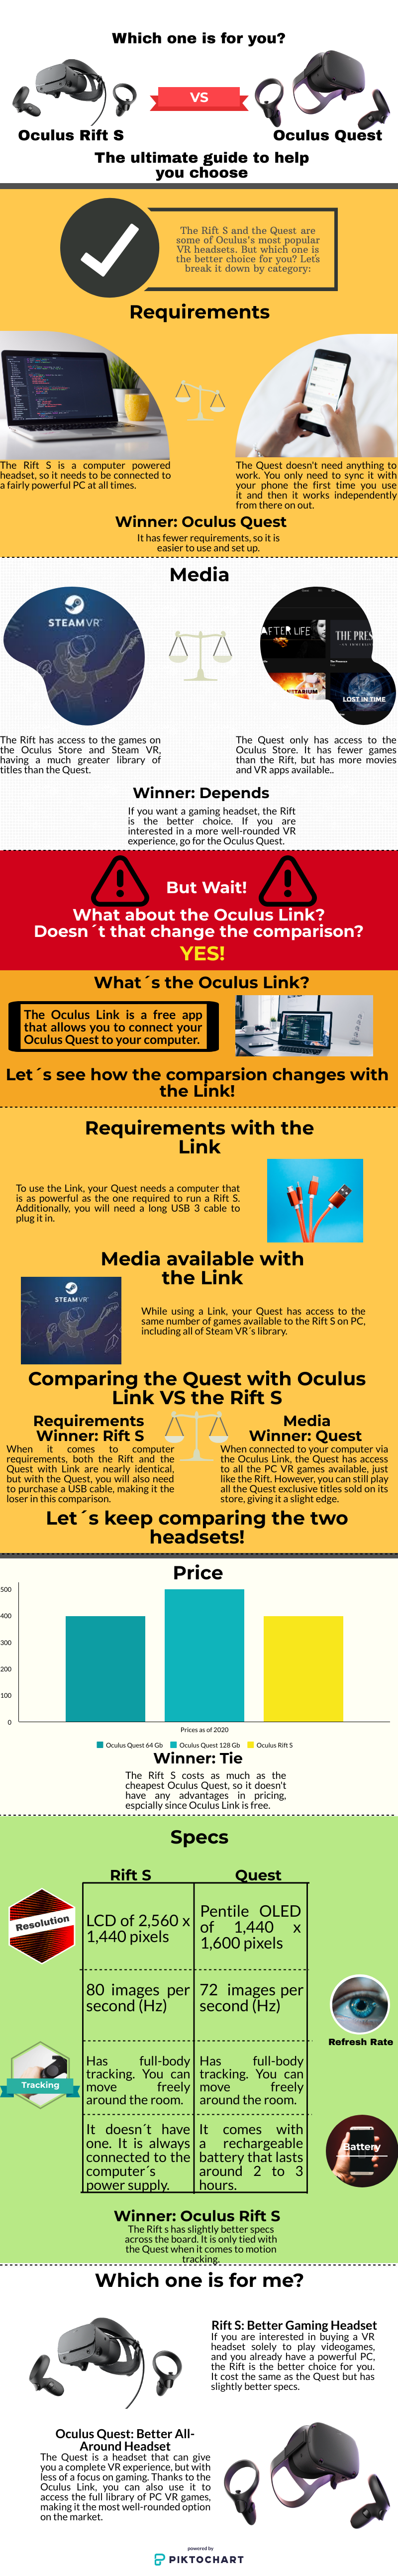 An infographic showcasing the differences between the Oculus Quest vs the Oculus Rift, It compares their prices, specs, games, and requirements to help the reader have a guide to help them choose.